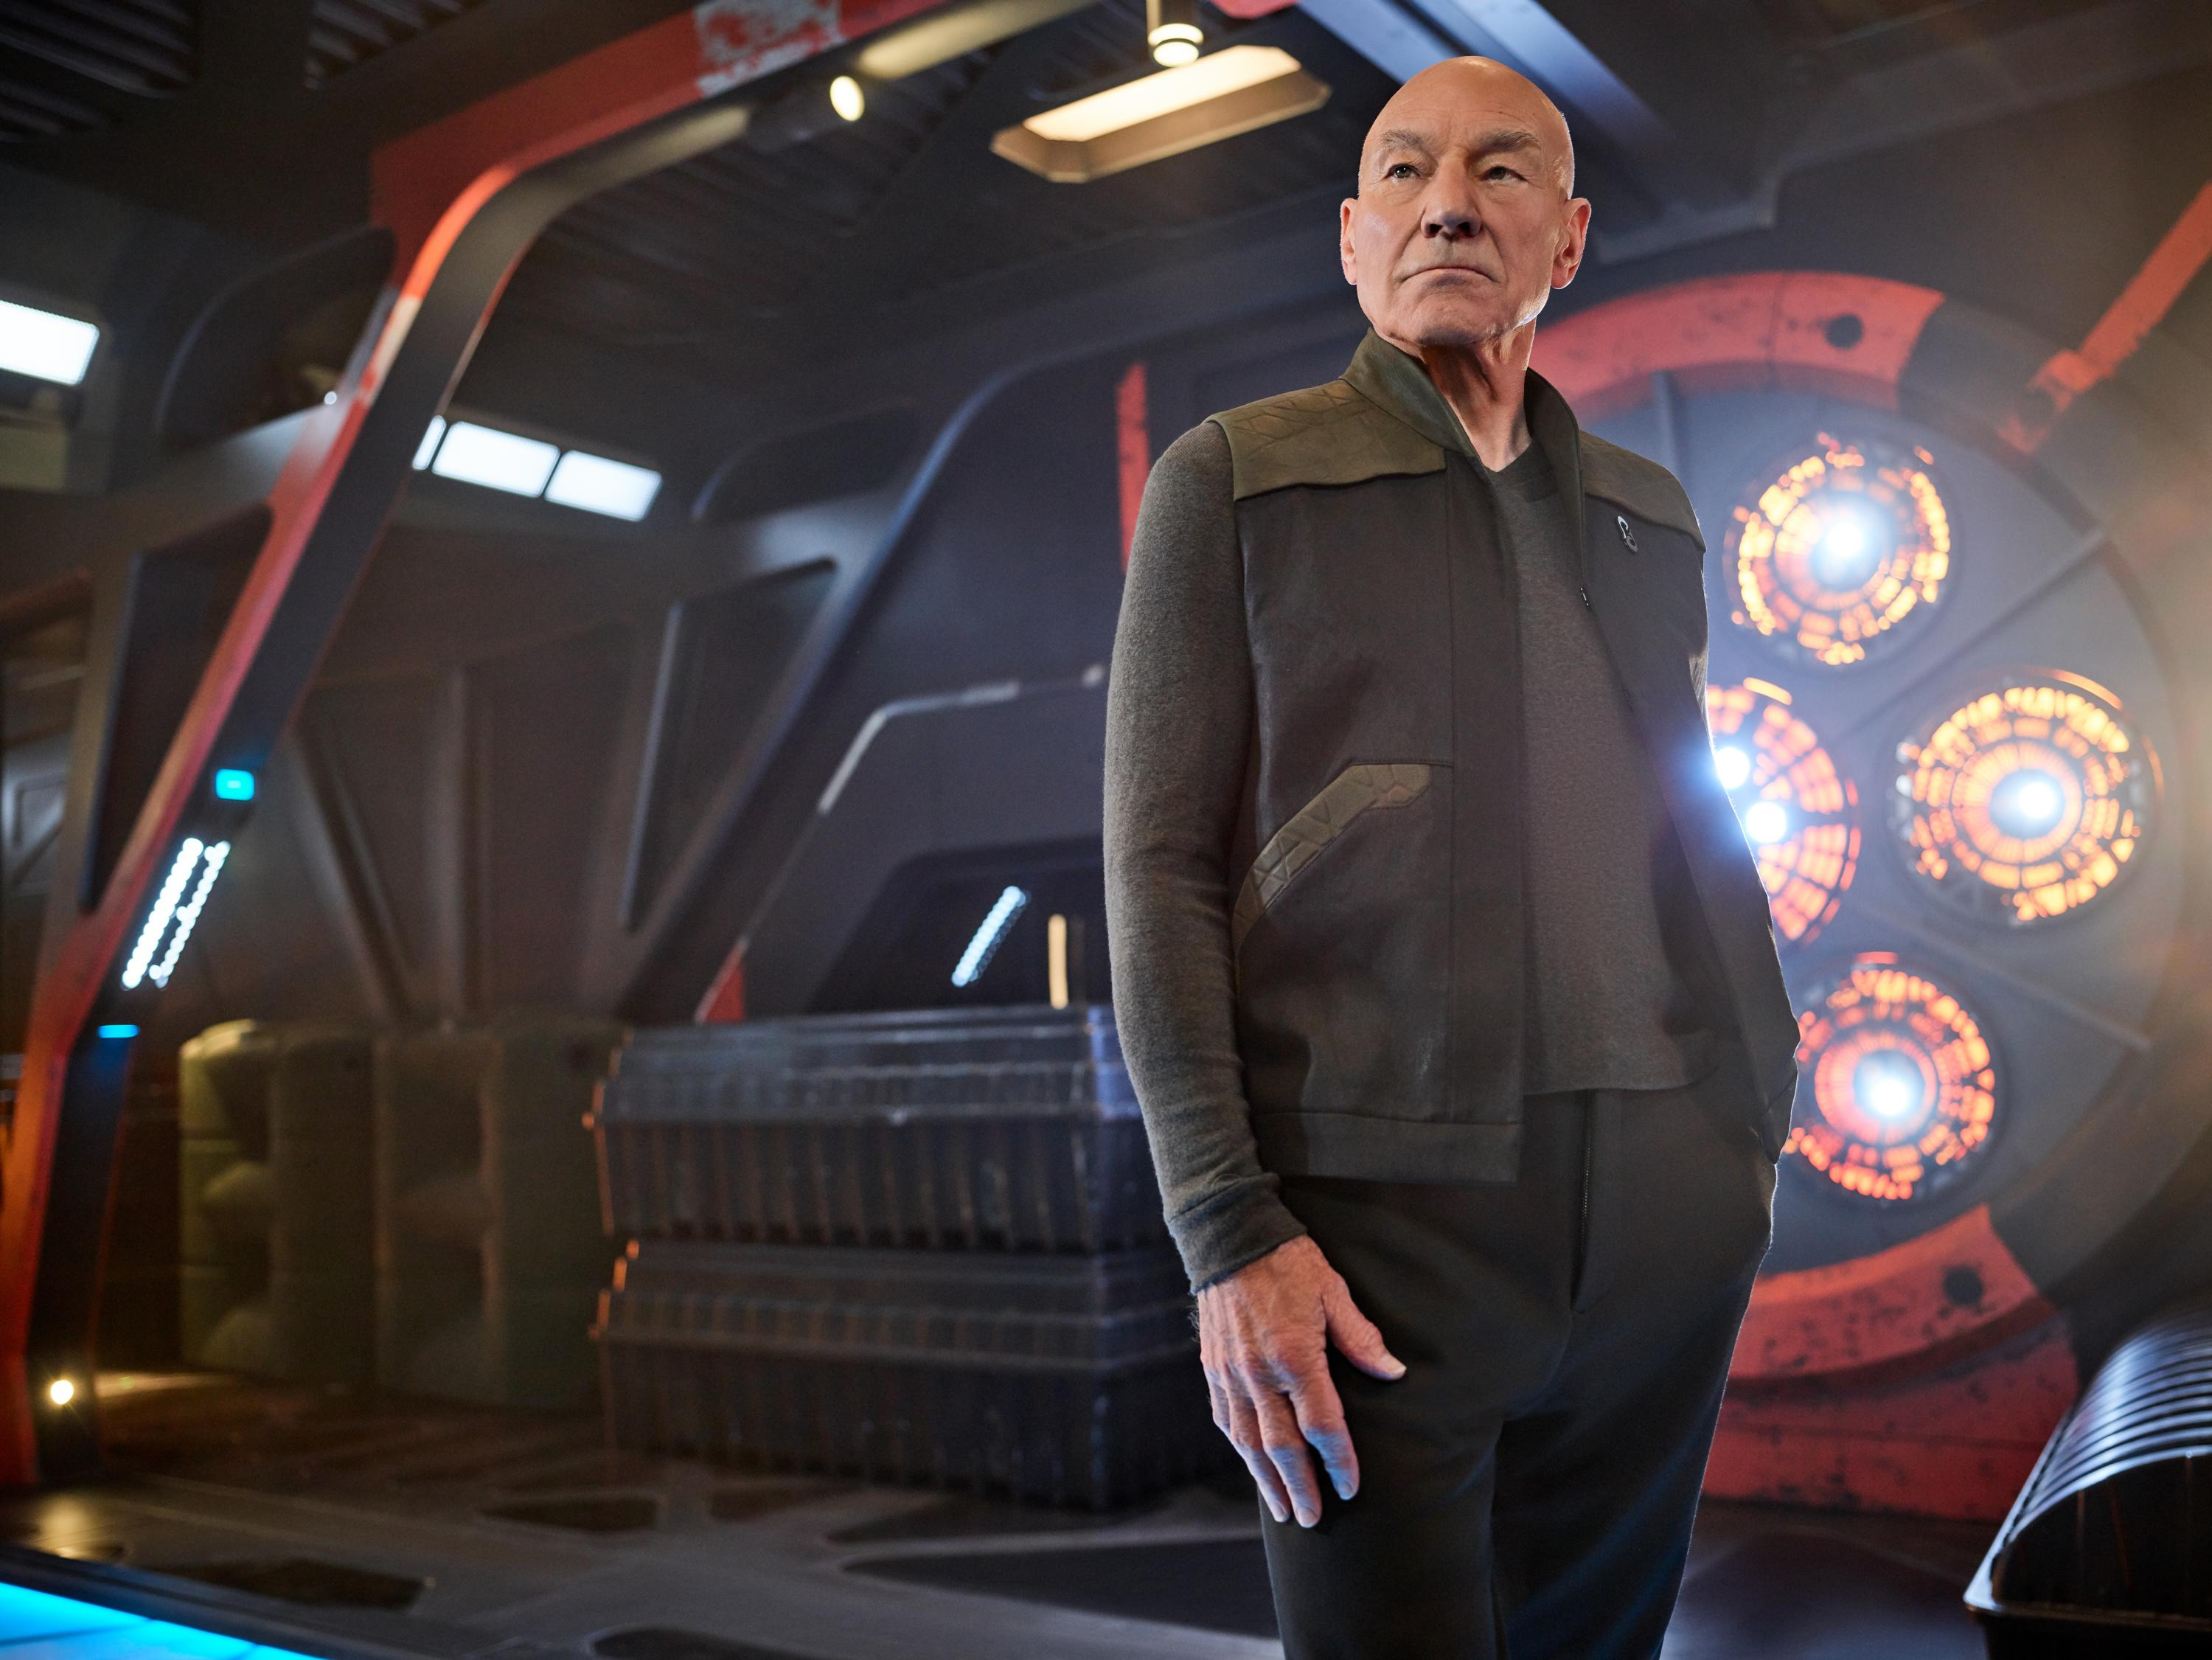 Pictured: Sir Patrick Stewart as Jean-Luc Picard of the CBS All Access series STAR TREK: PICARD. (Photo Cr: James Dimmock/CBS ©2019 CBS Interactive, Inc. All Rights Reserved.)